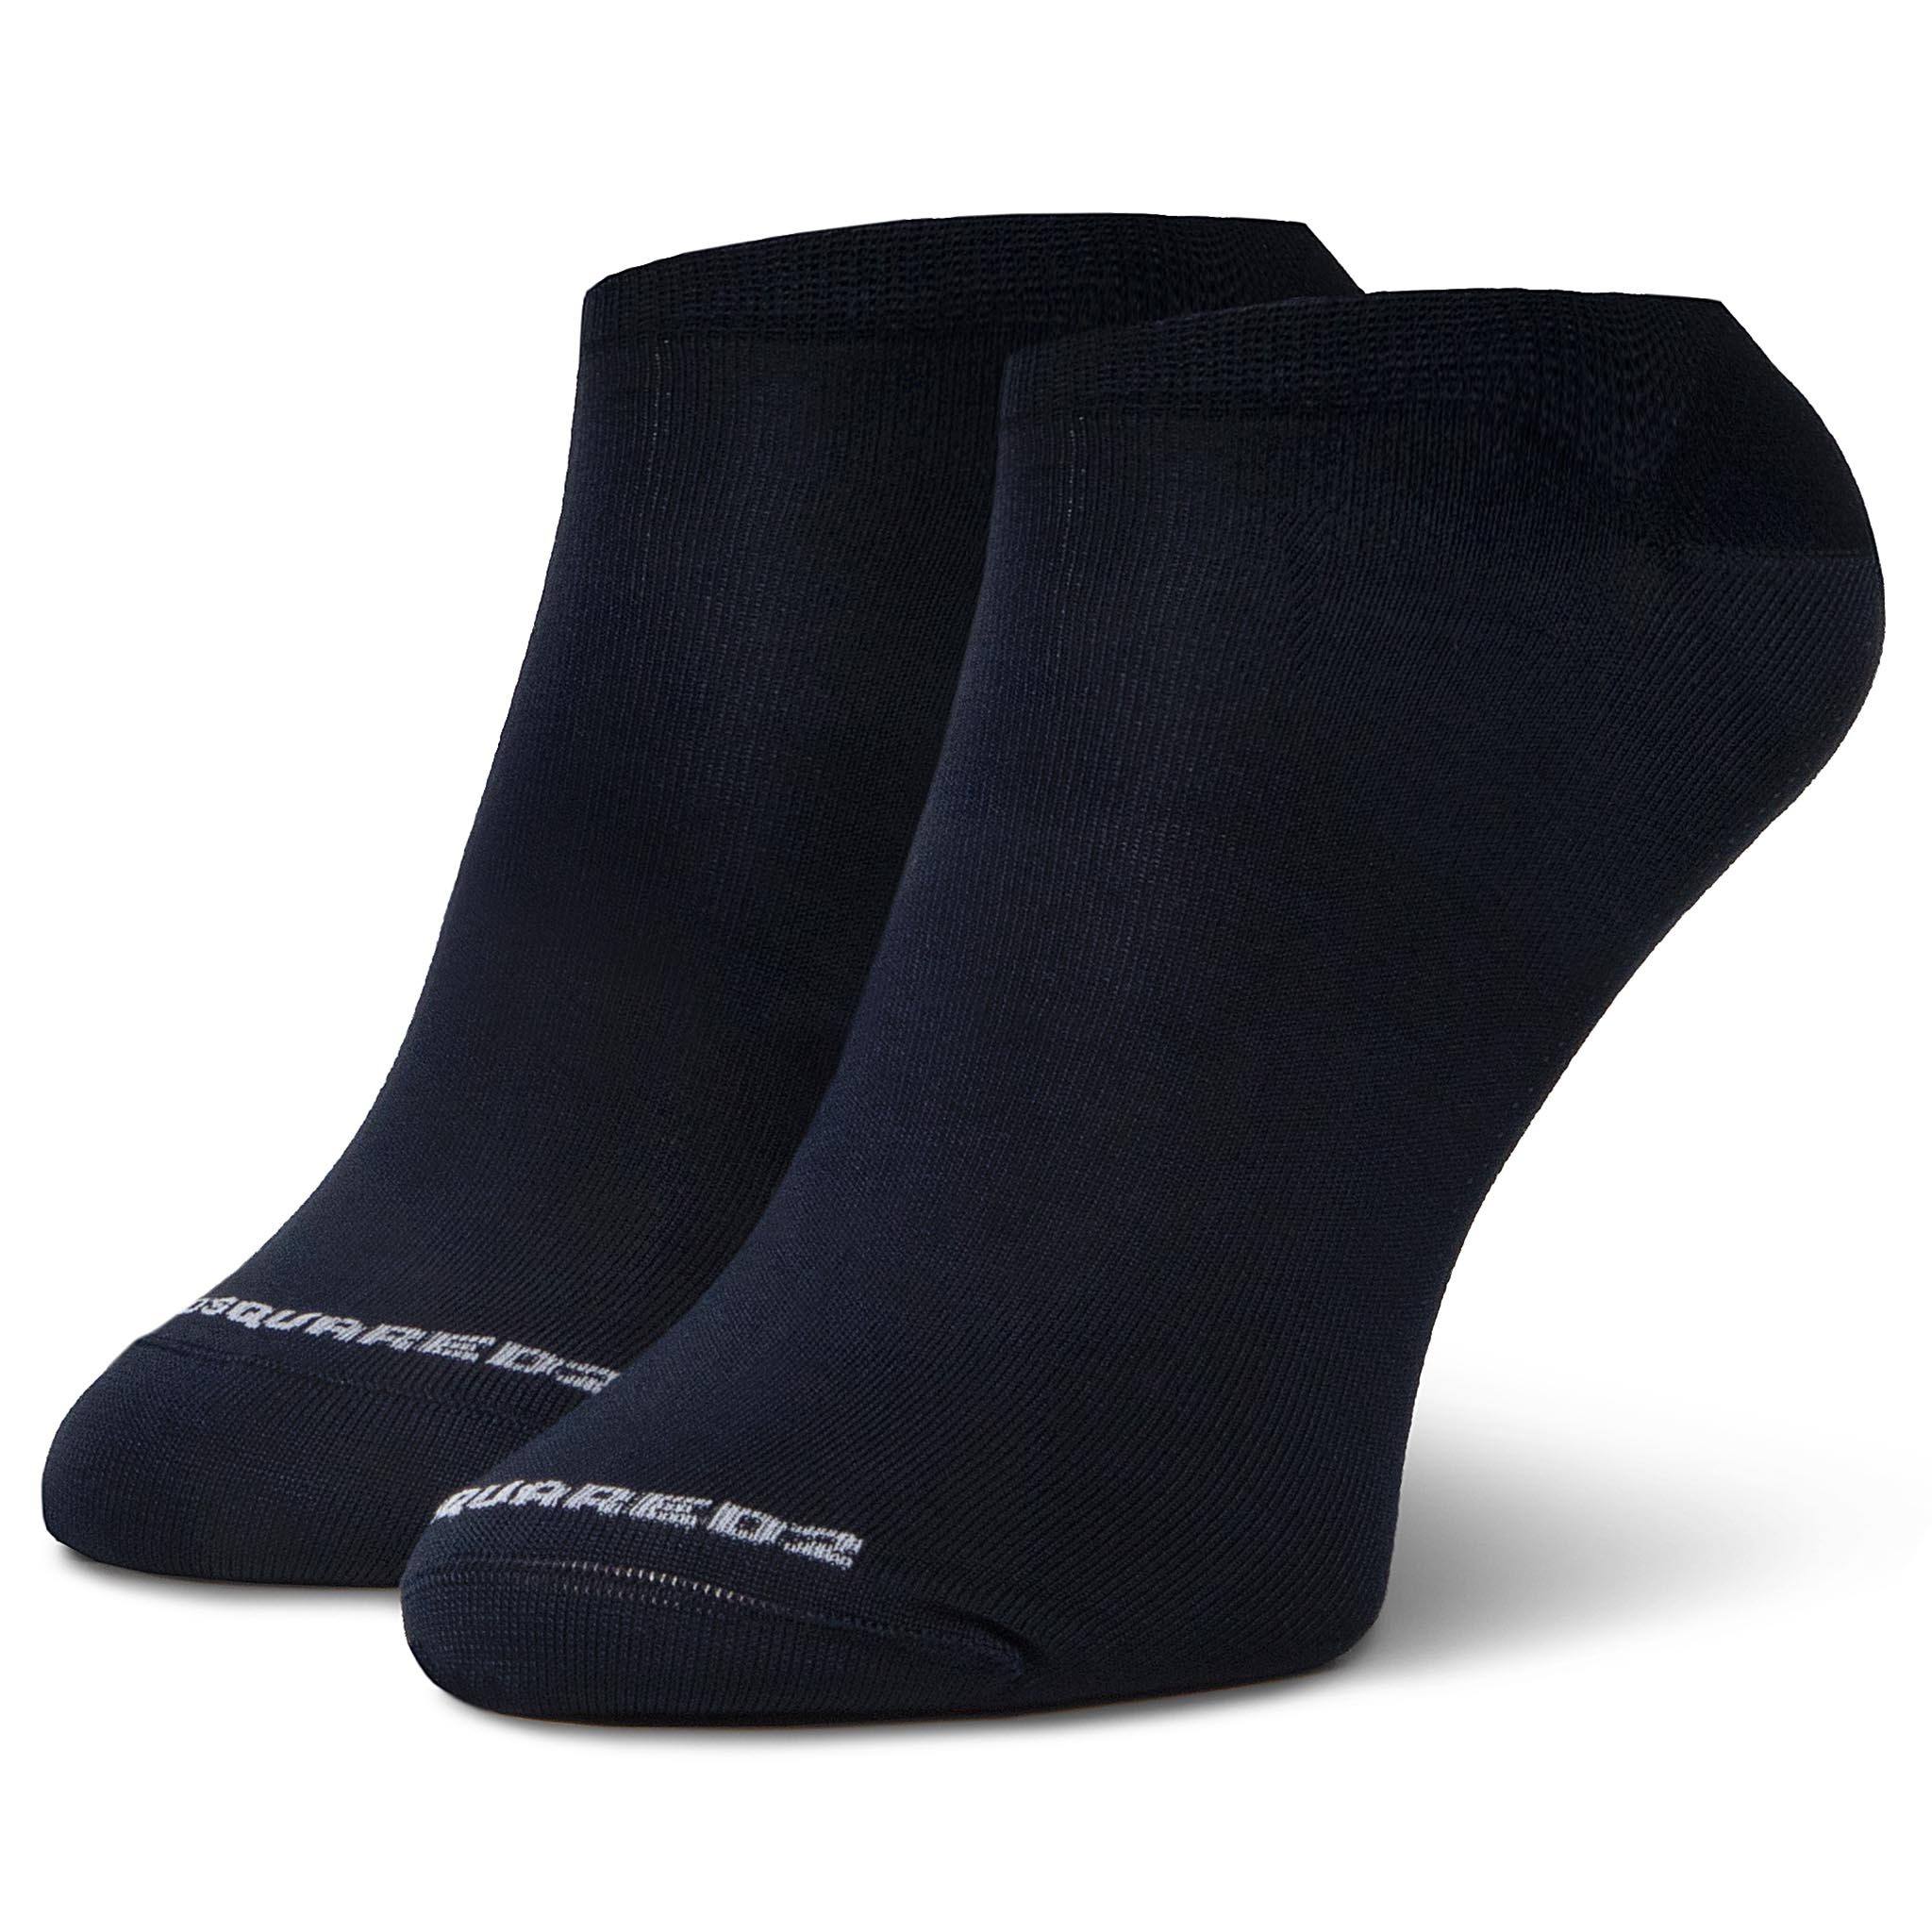 Șosete Medii Unisex Dsquared2 - No Show Socks Dfv161880.410un R.Os Navy imagine